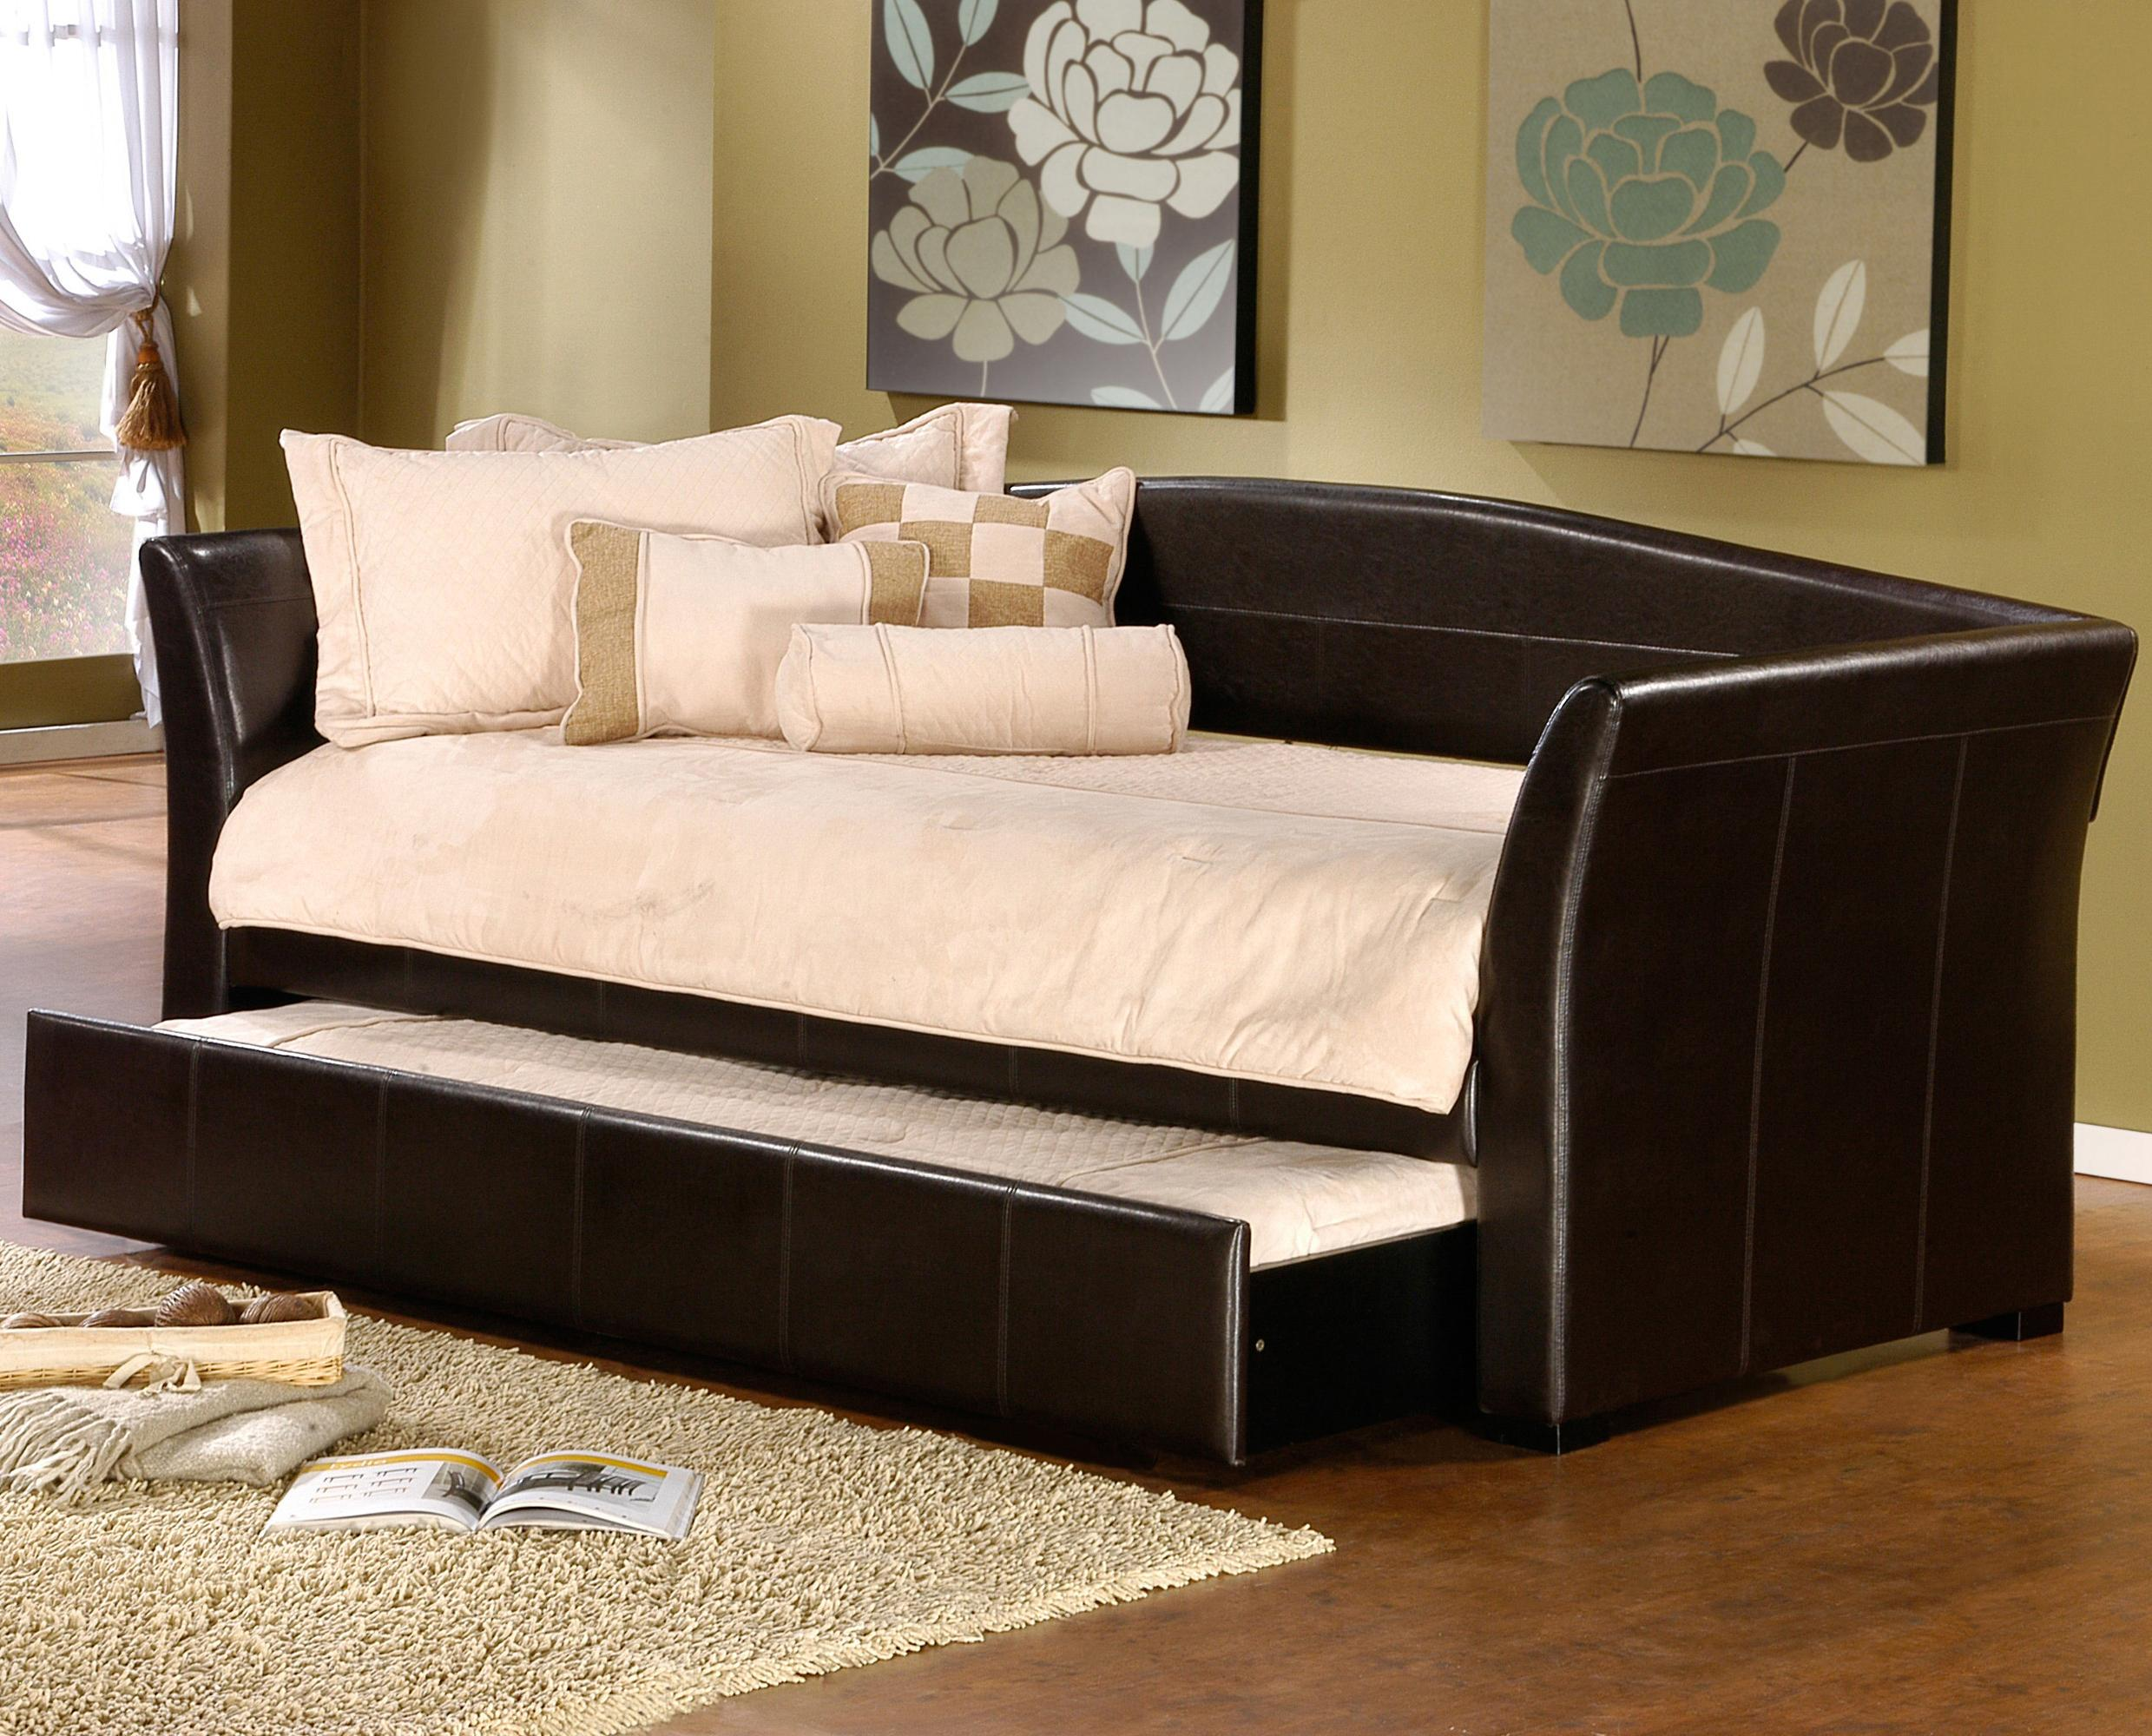 Hillsdale Daybeds Twin Montgomery Daybed - Item Number: 1560DBT